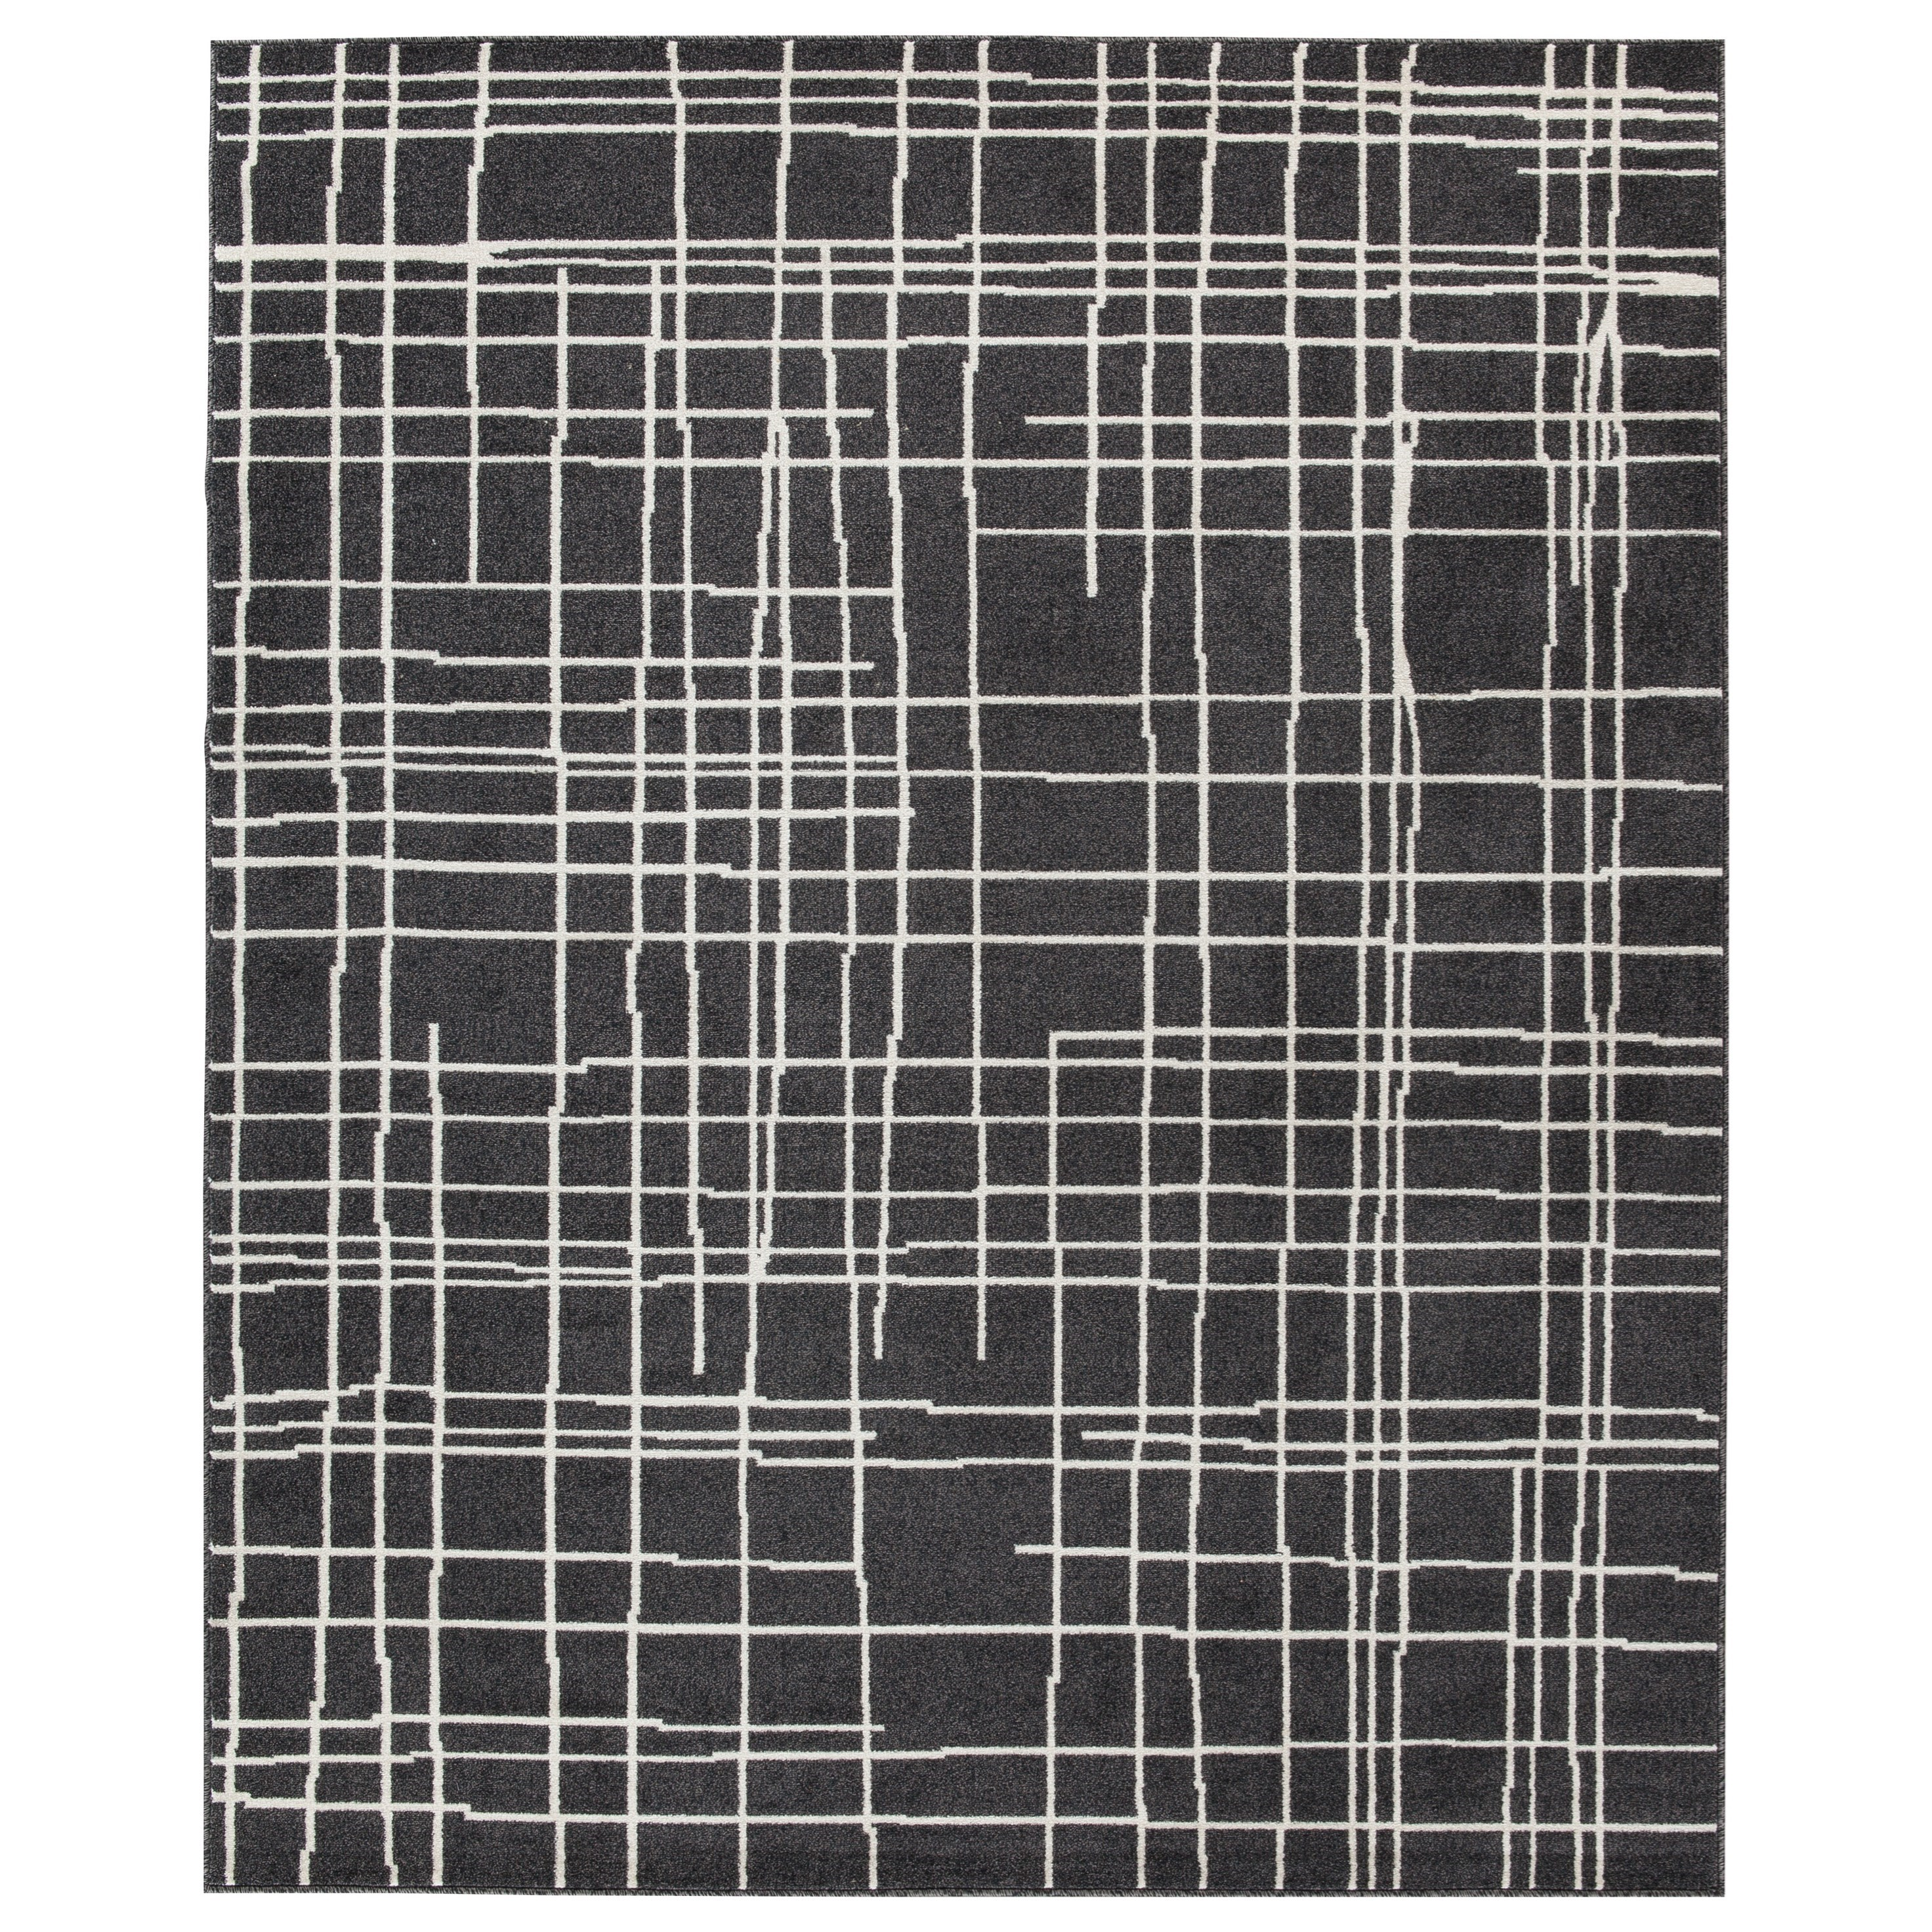 Contemporary Area Rugs Jai Black/White Large Rug by Signature Design by Ashley at Northeast Factory Direct